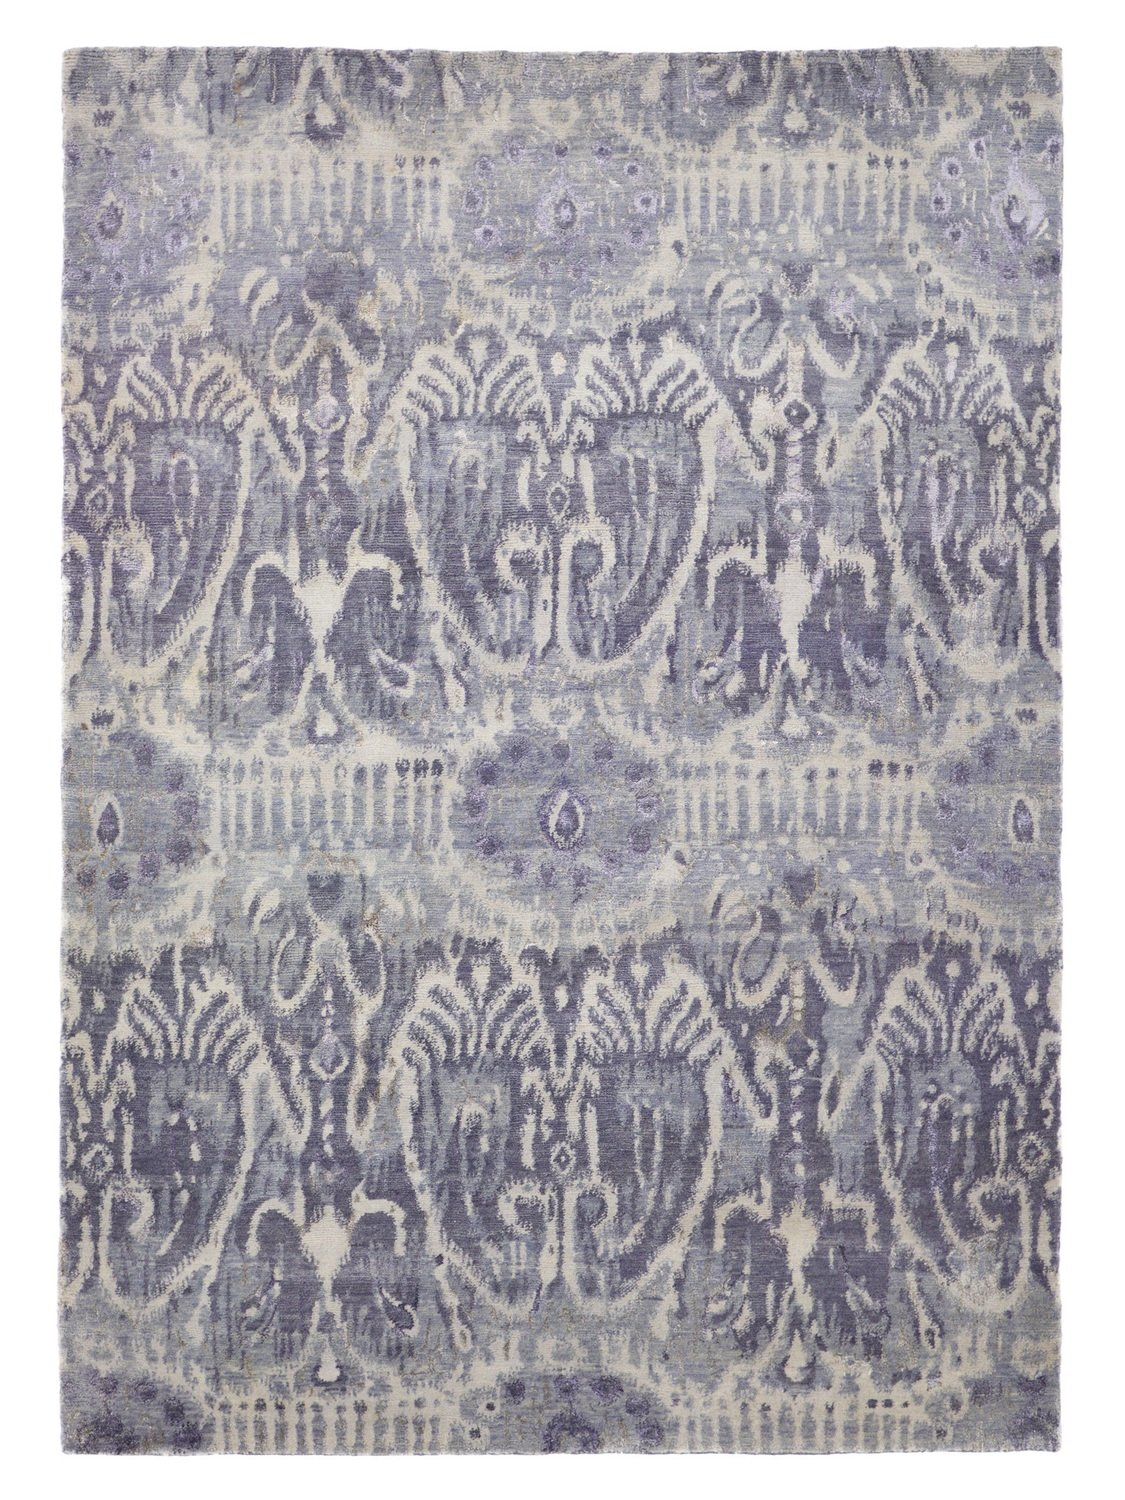 Indian Ikat wool and viscose rug 240 x 170 Final Reduction